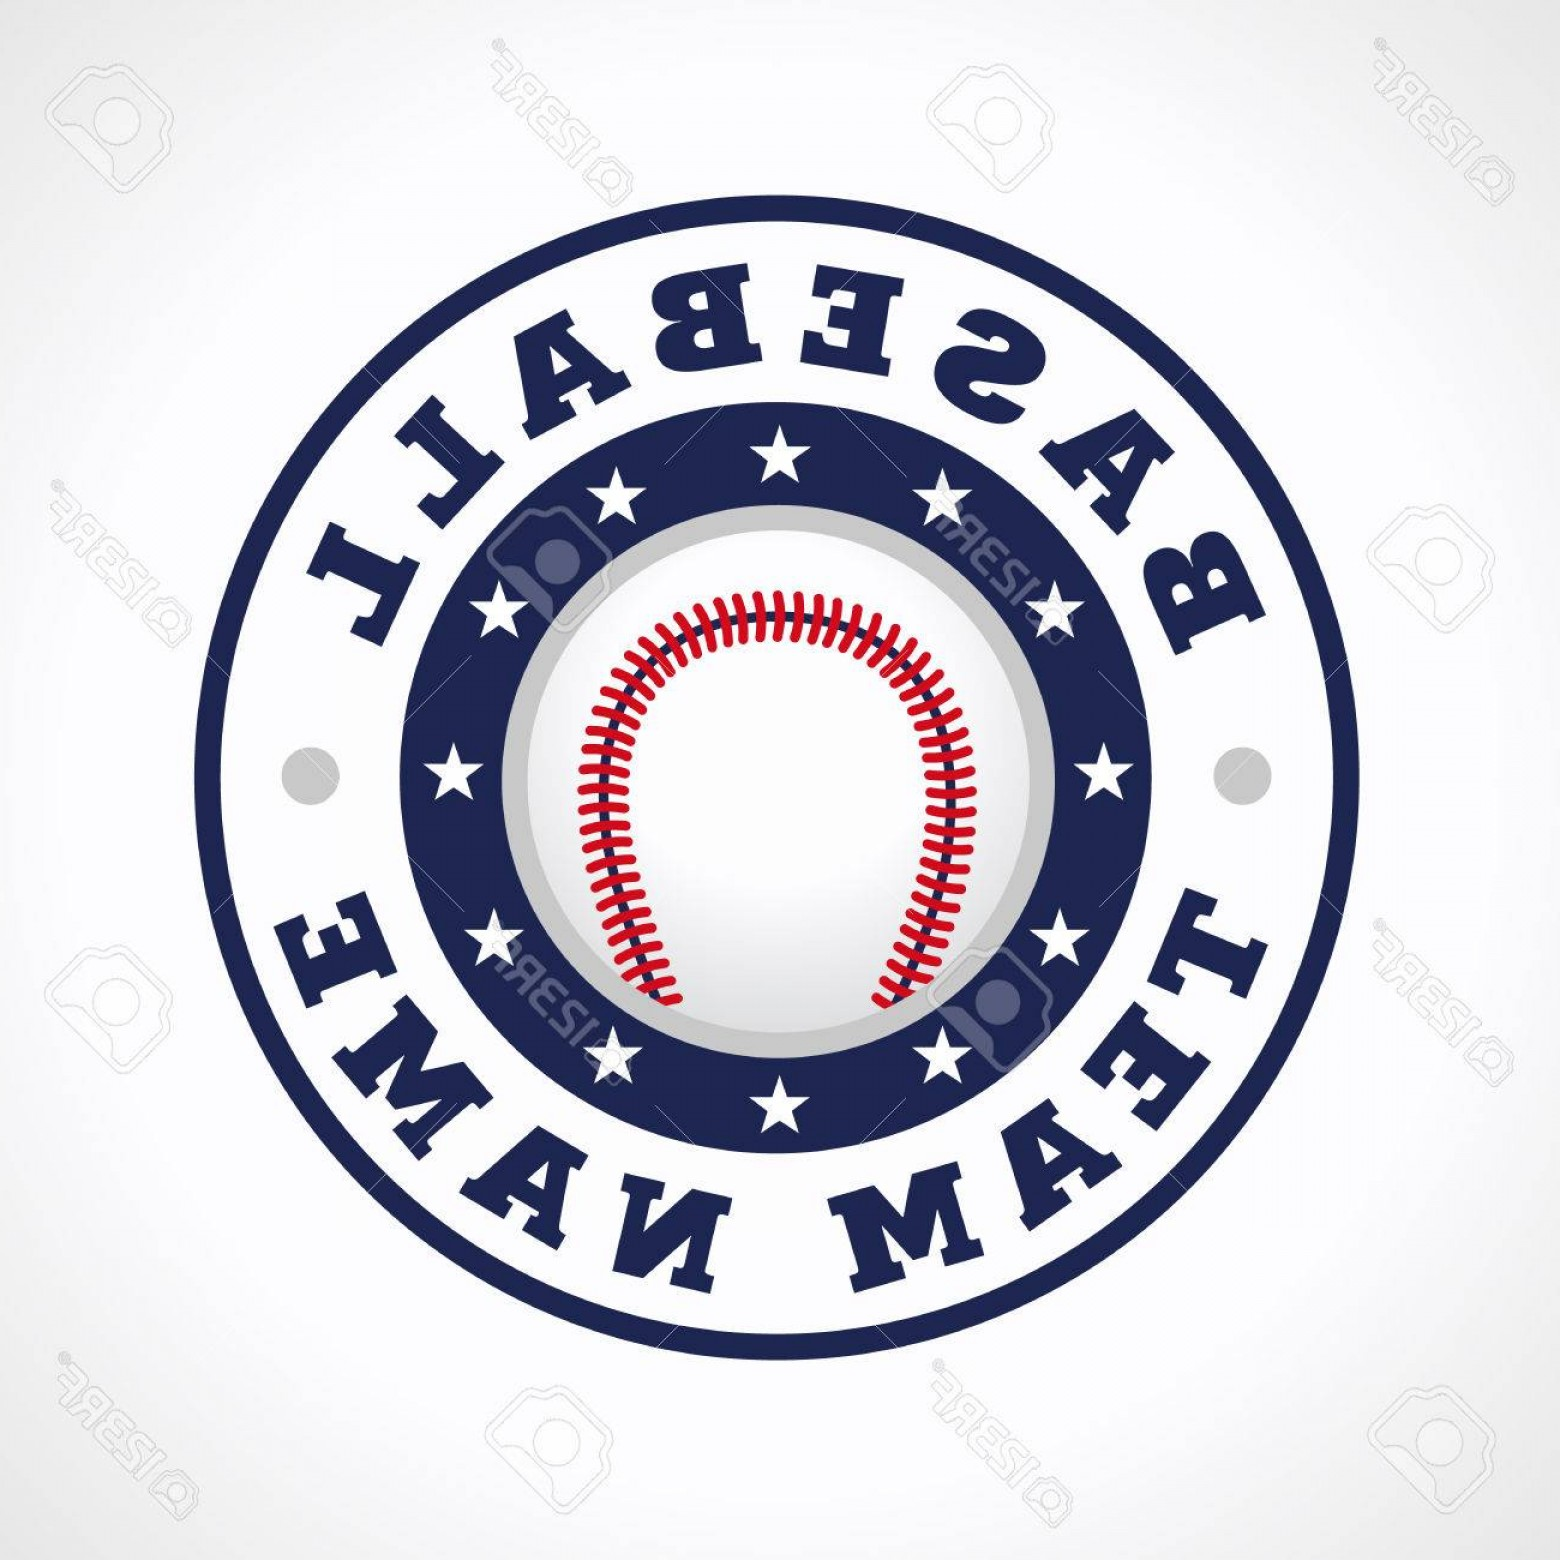 National League Baseball Logo Vector: Photostock Vector Baseball Vector Logo Branding Symbol Of Teams National Competitions Union Matches Leagues Or Sport E